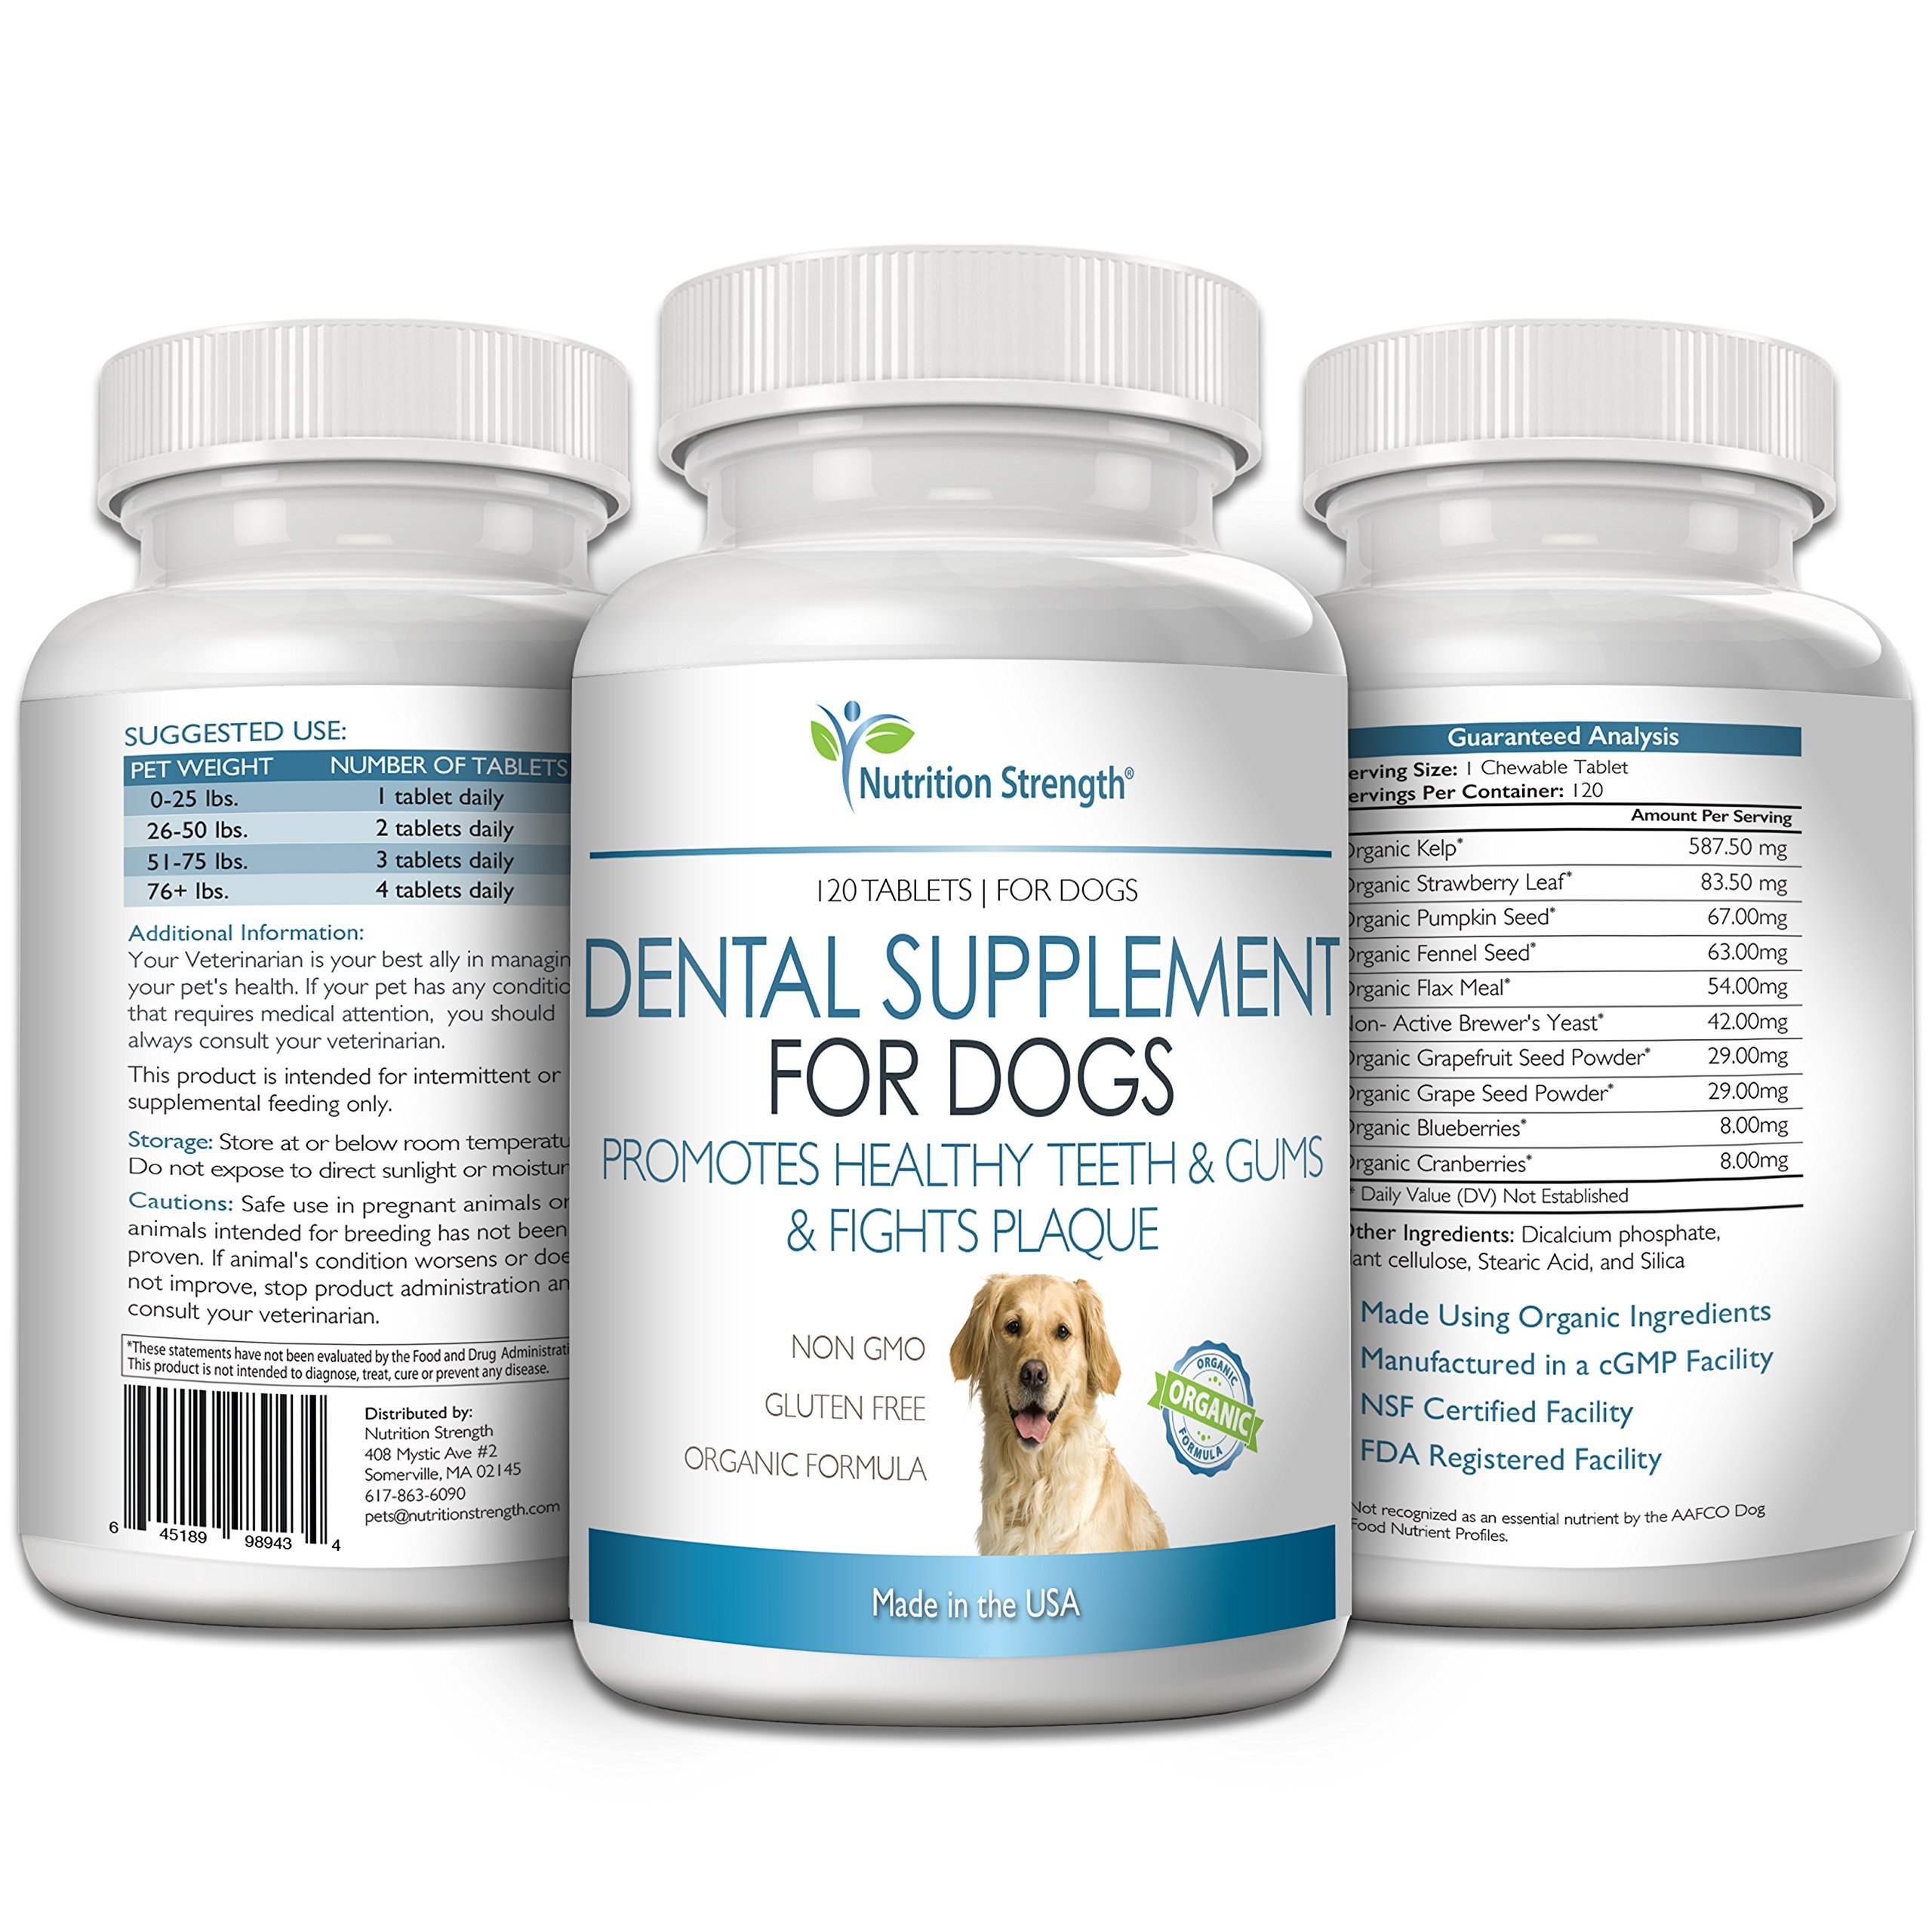 Nutrition Strength Dental Care for Dogs, Daily Supplement for Healthy Dog Gums and Teeth with All-Organic Ingredients, 120 Chewable Tablets by Nutrition Strength (Image #4)